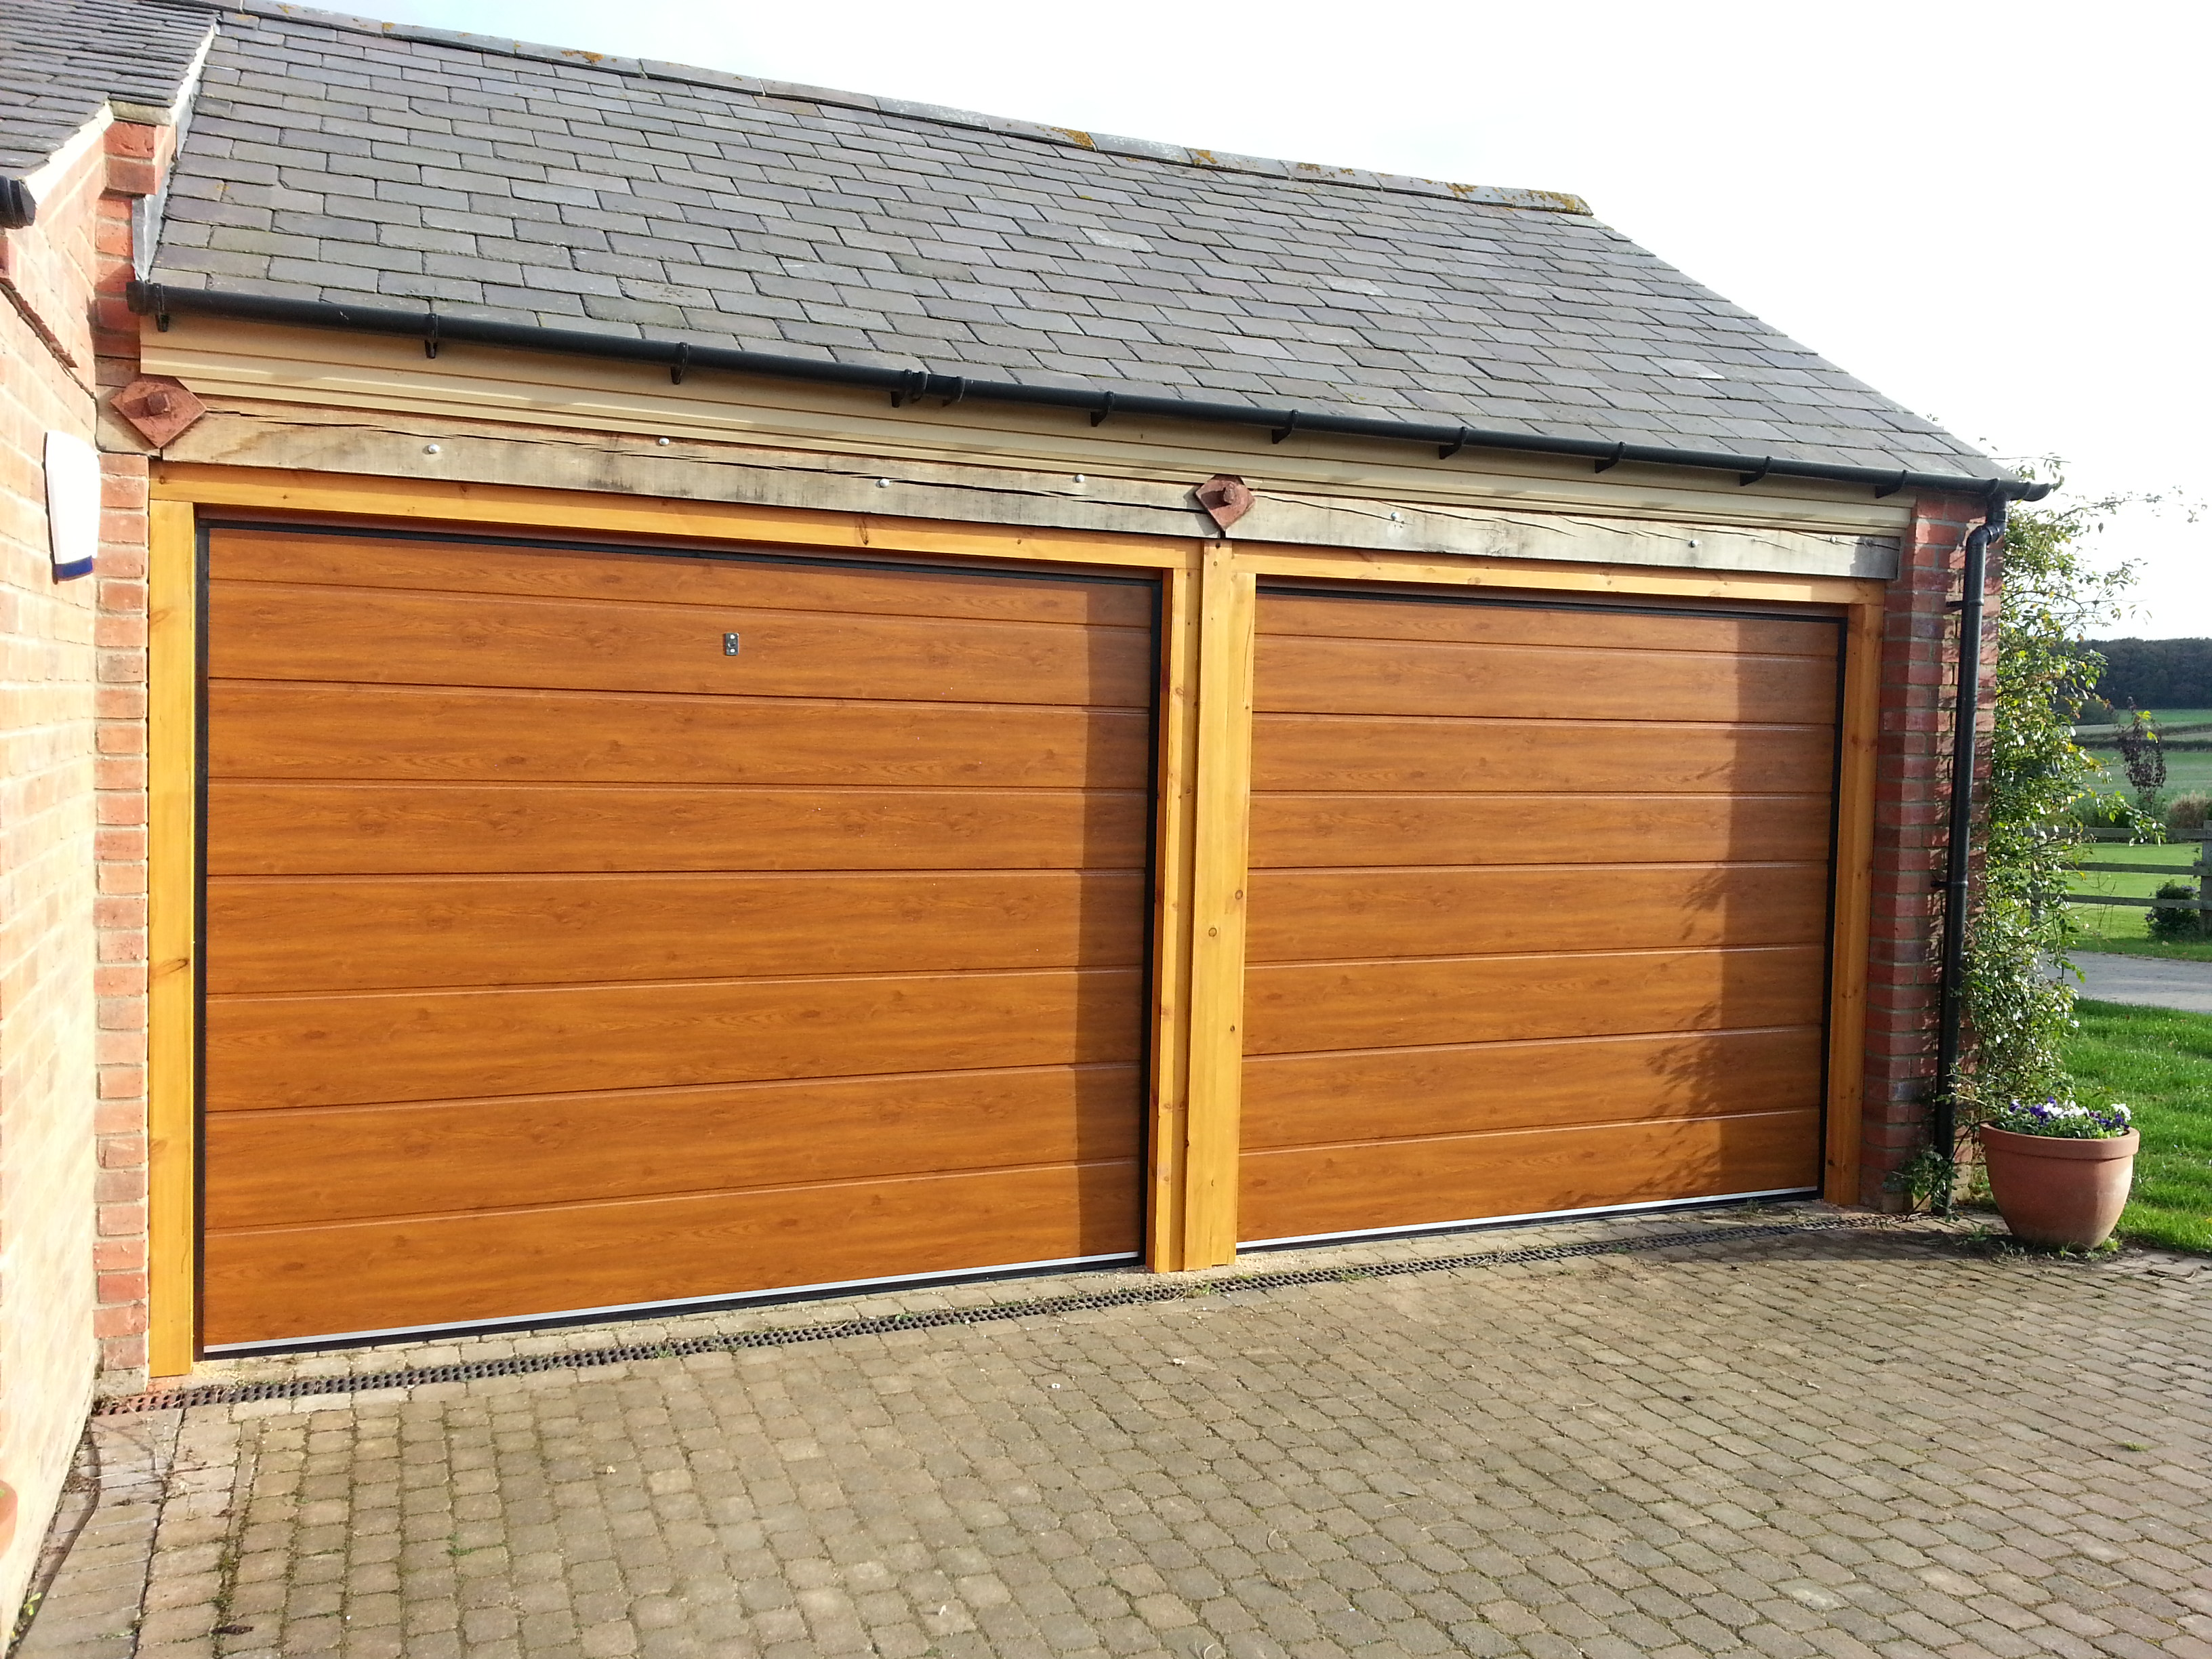 New Garage Doors Grantham The Garage Door Company